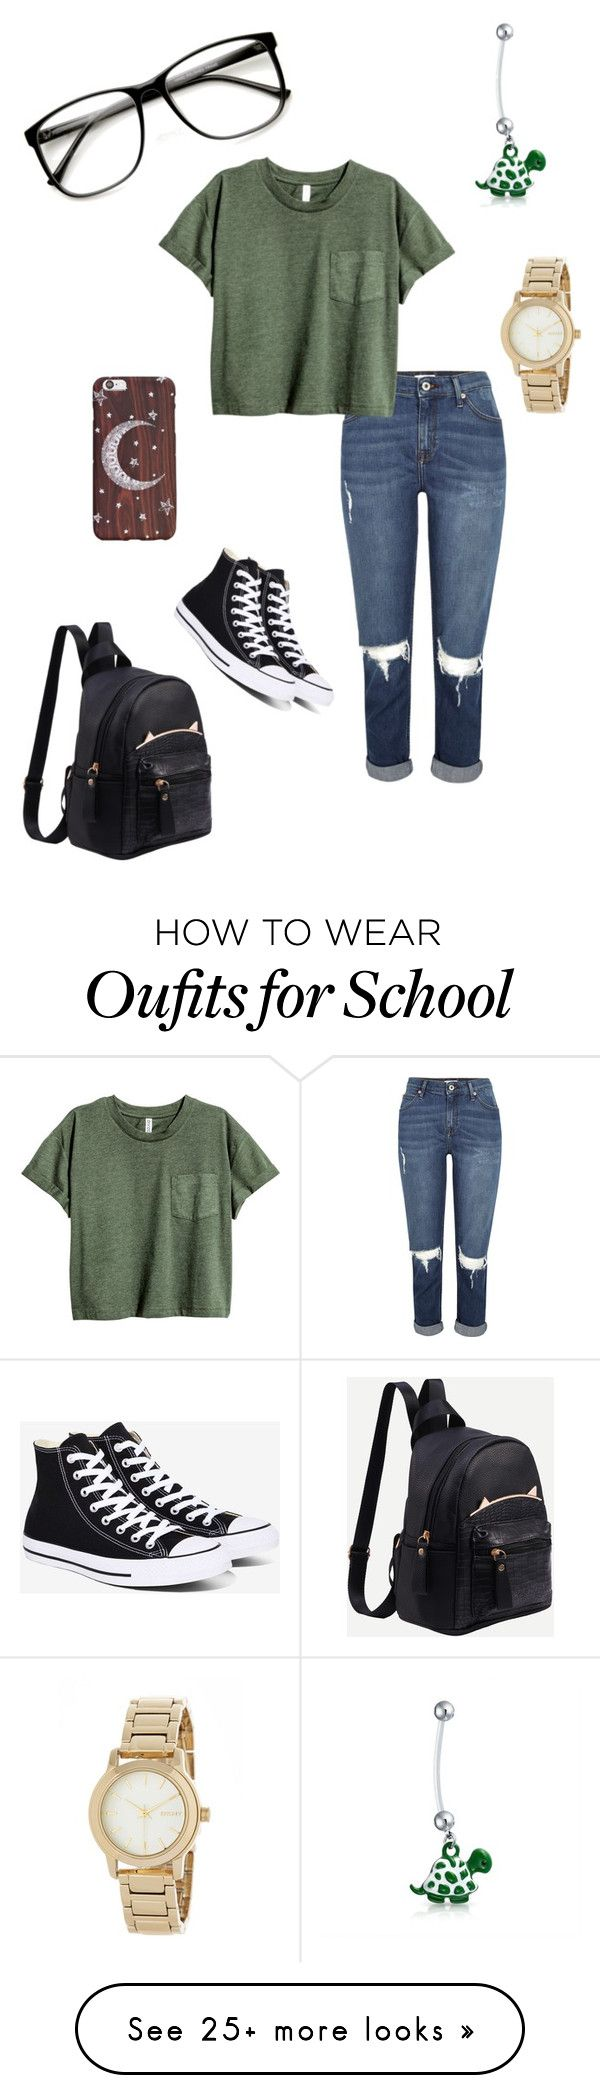 """Back to school"" by jazlynvanessa on Polyvore featuring Converse, Bling Jewelry, DKNY and ZeroUV"